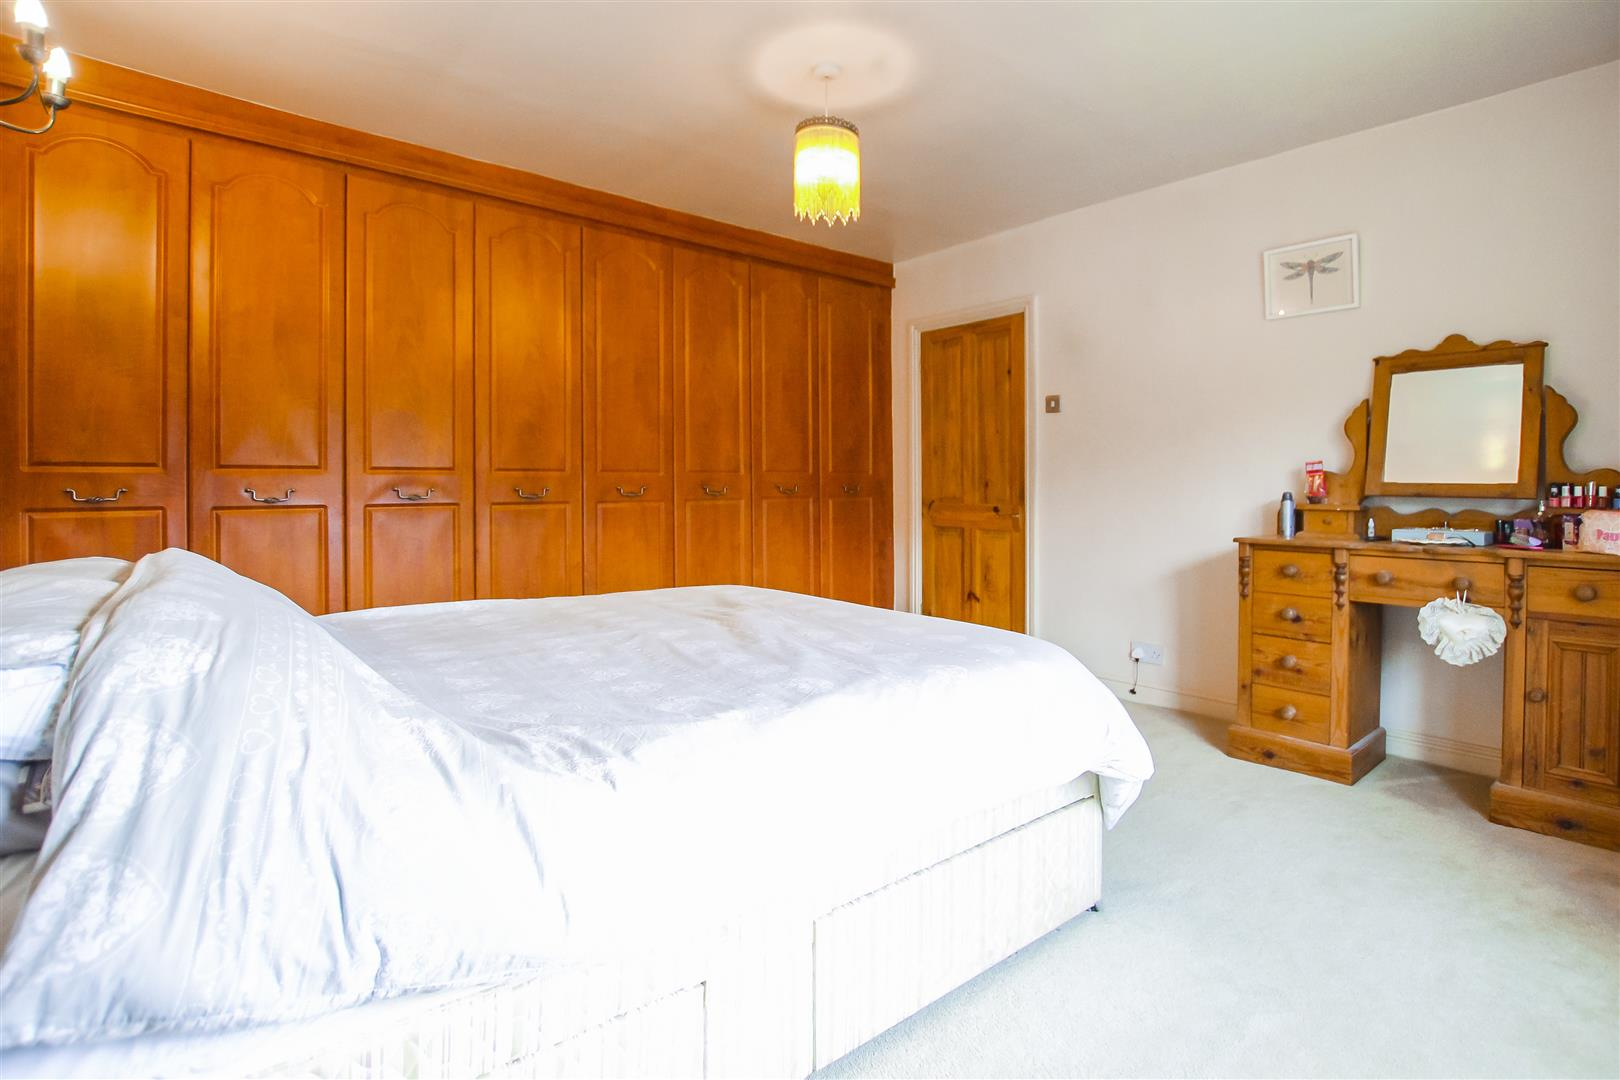 4 Bedroom Farmhouse For Sale - Image 23